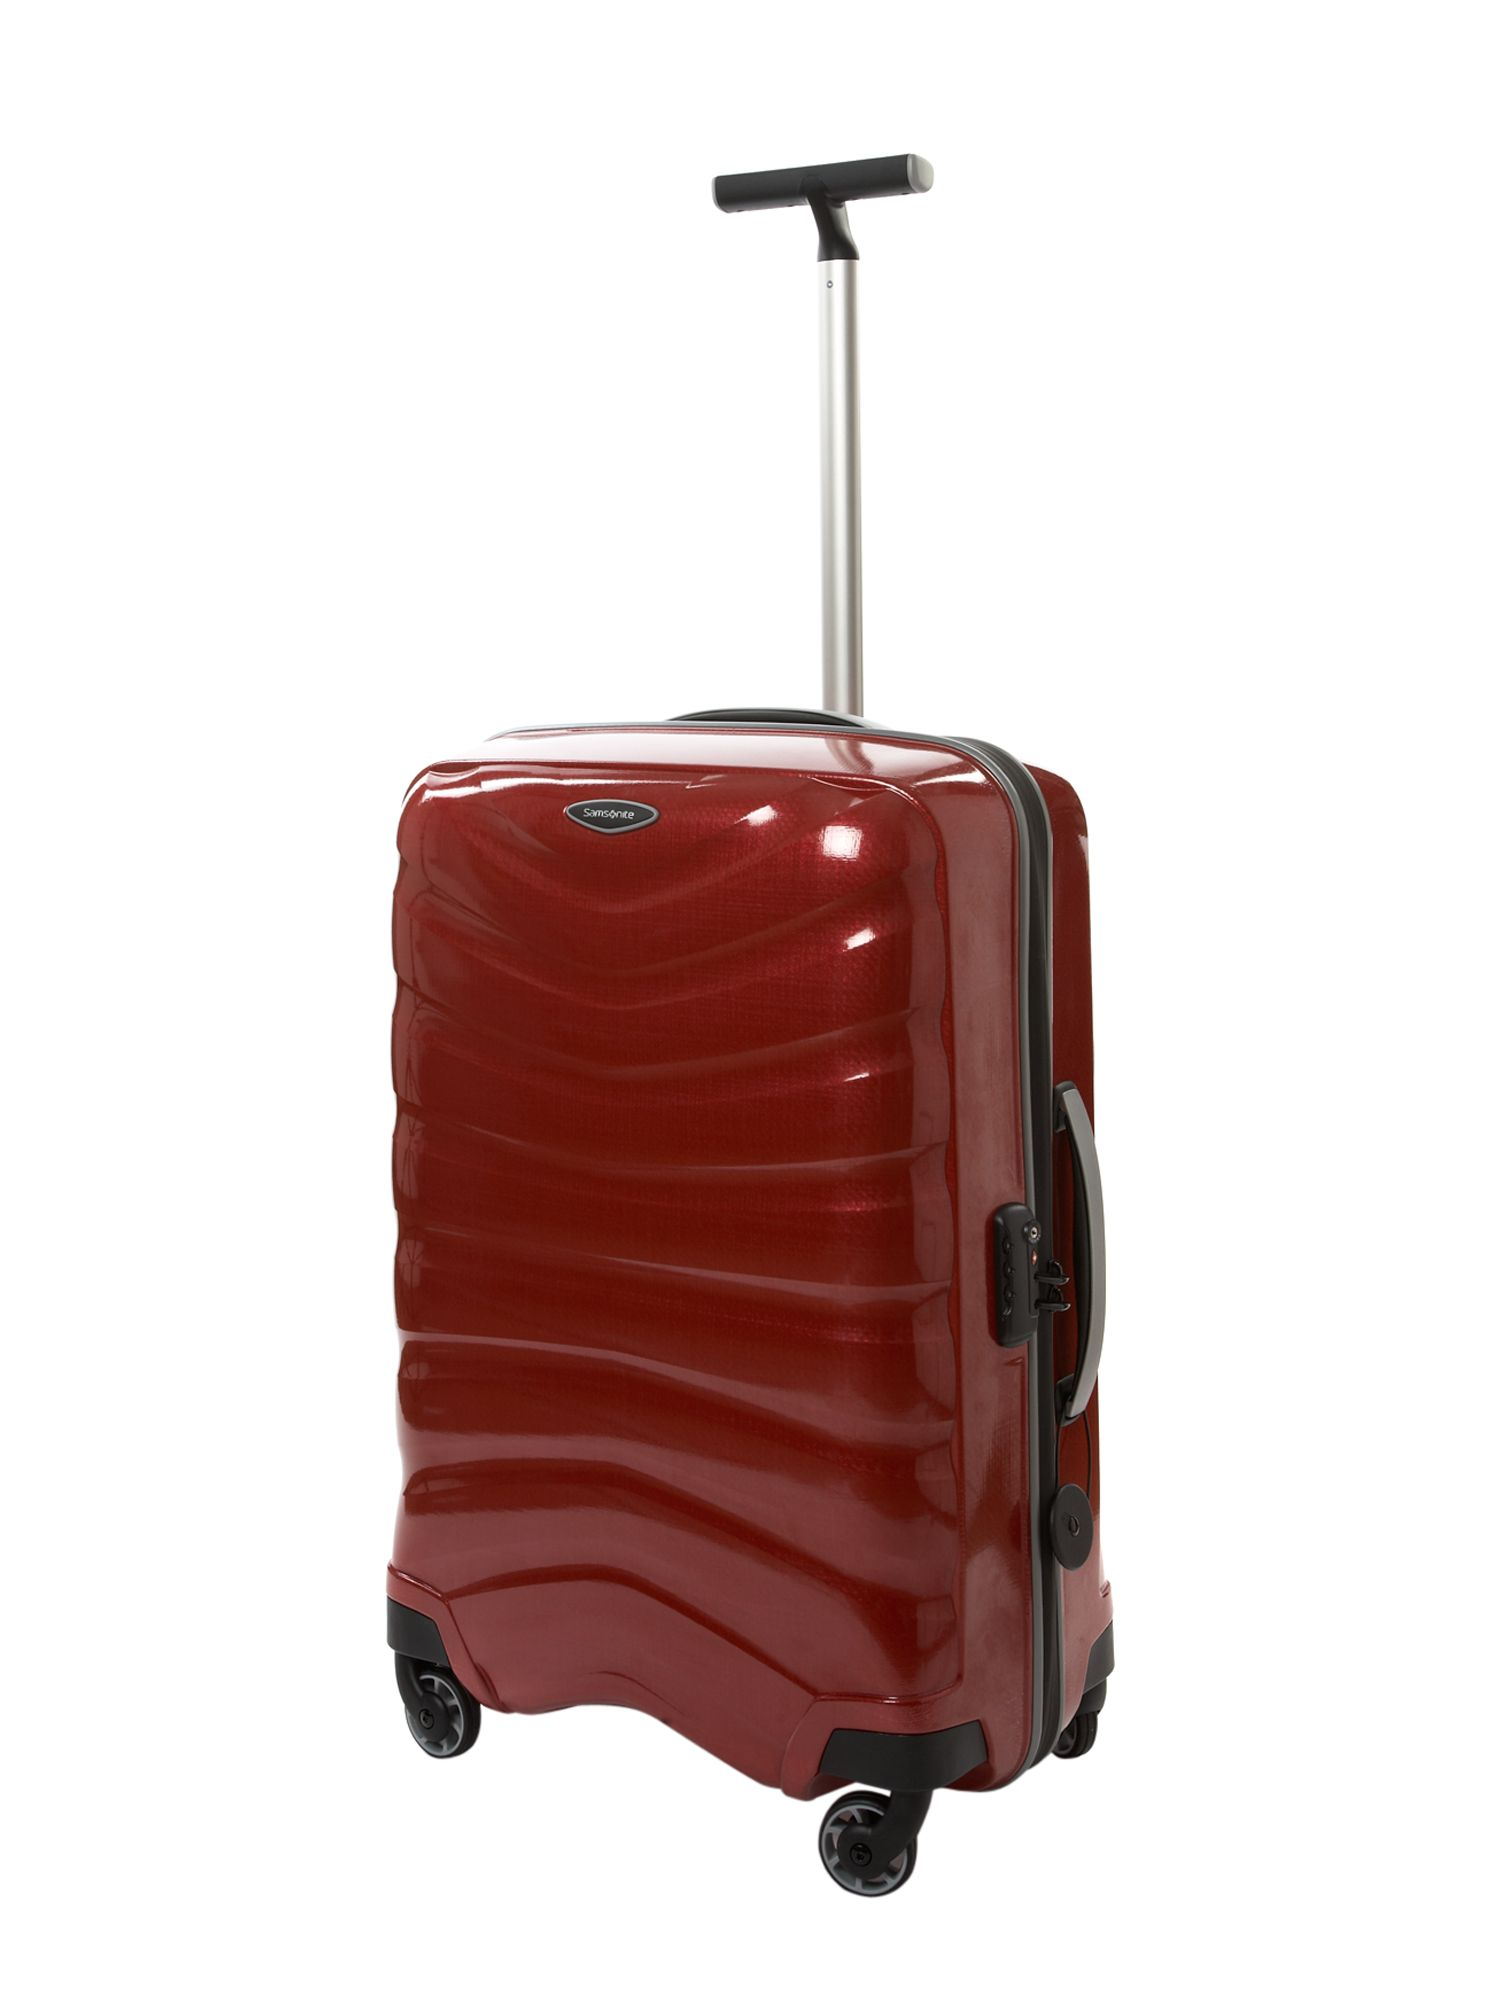 Firelite Red 69cm 4 Wheel Case